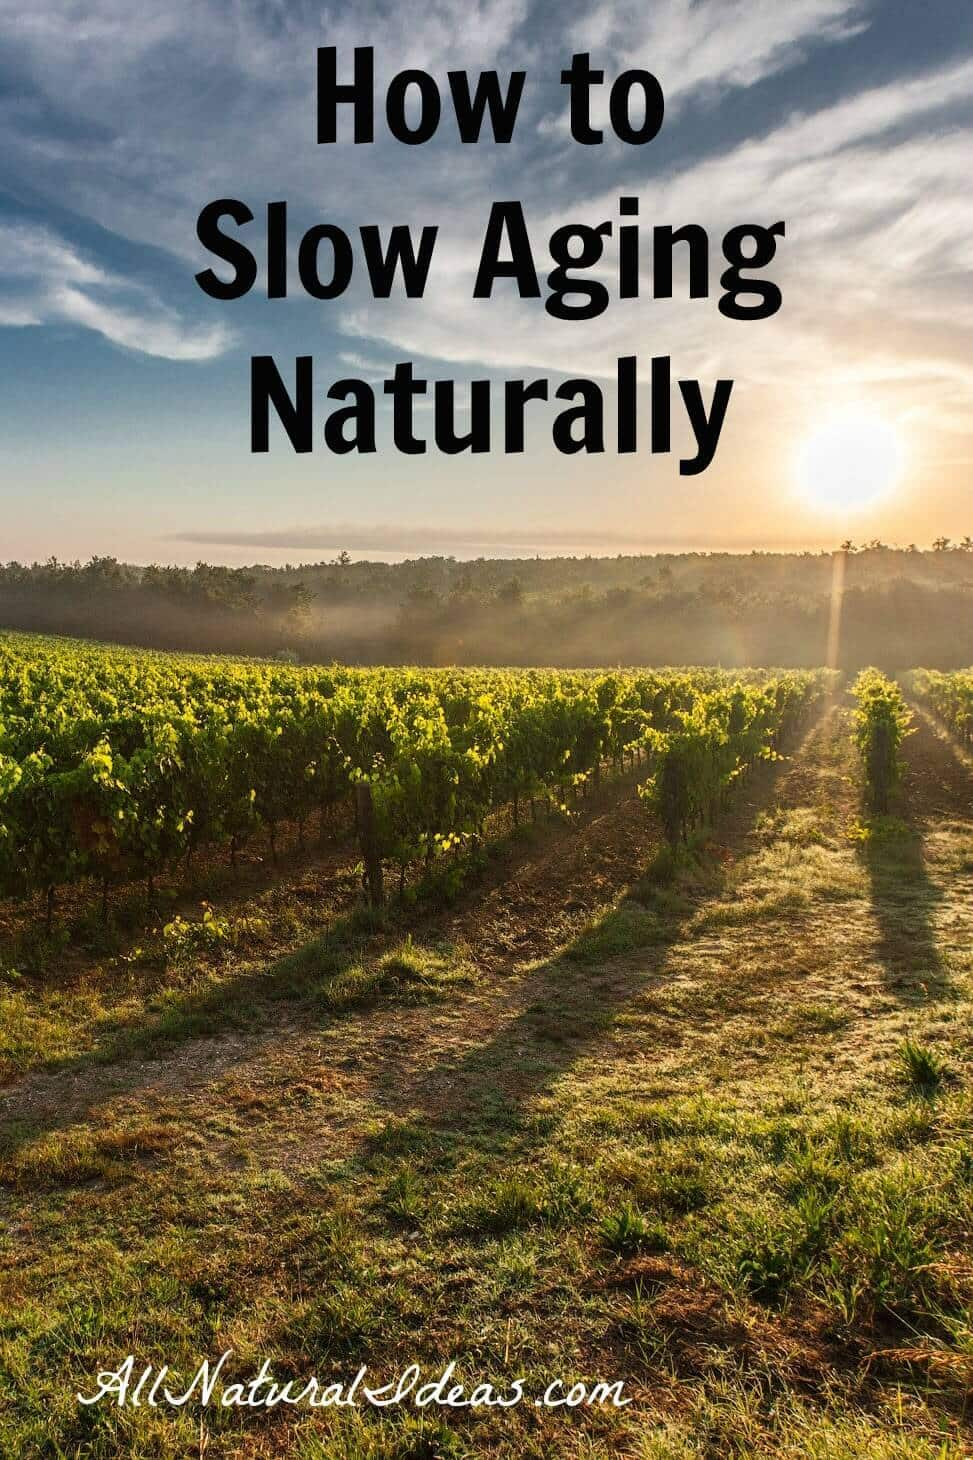 Getting tired of feeling old? Is age taking a toll on your physical and mental health? Learn how to slow aging naturally to feel young again!